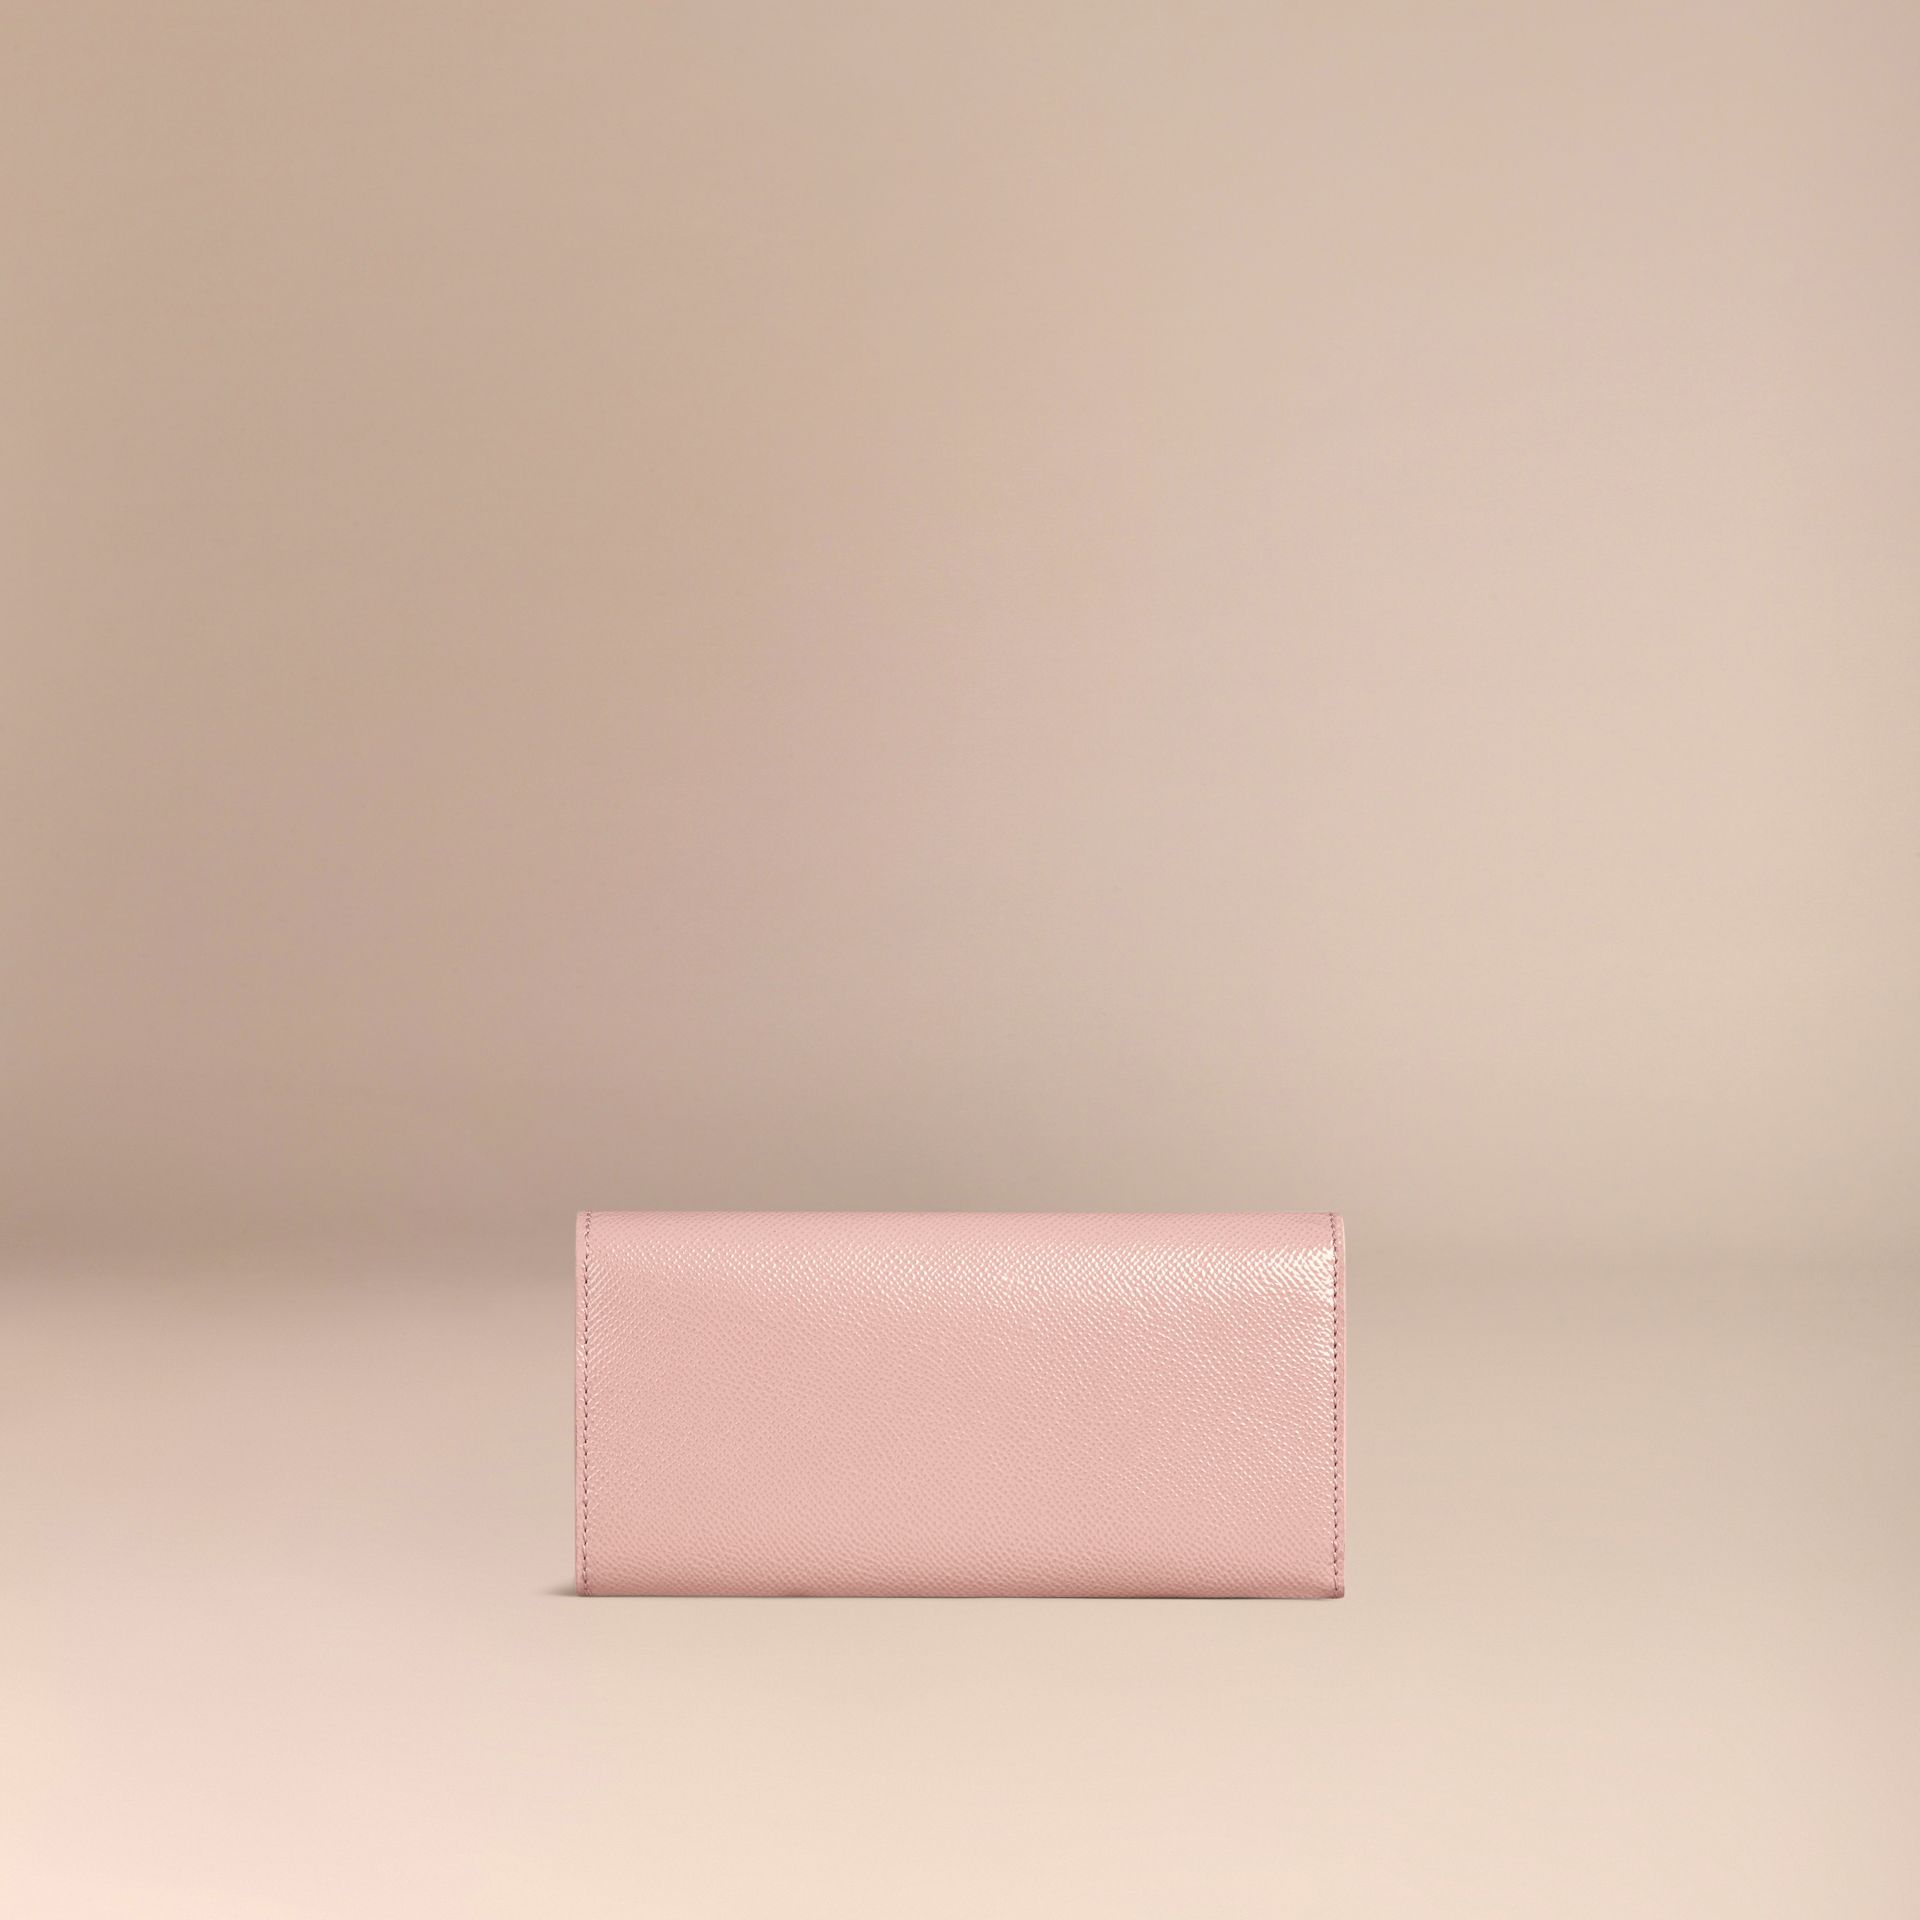 Ash rose Patent London Leather Continental Wallet Ash Rose - gallery image 4